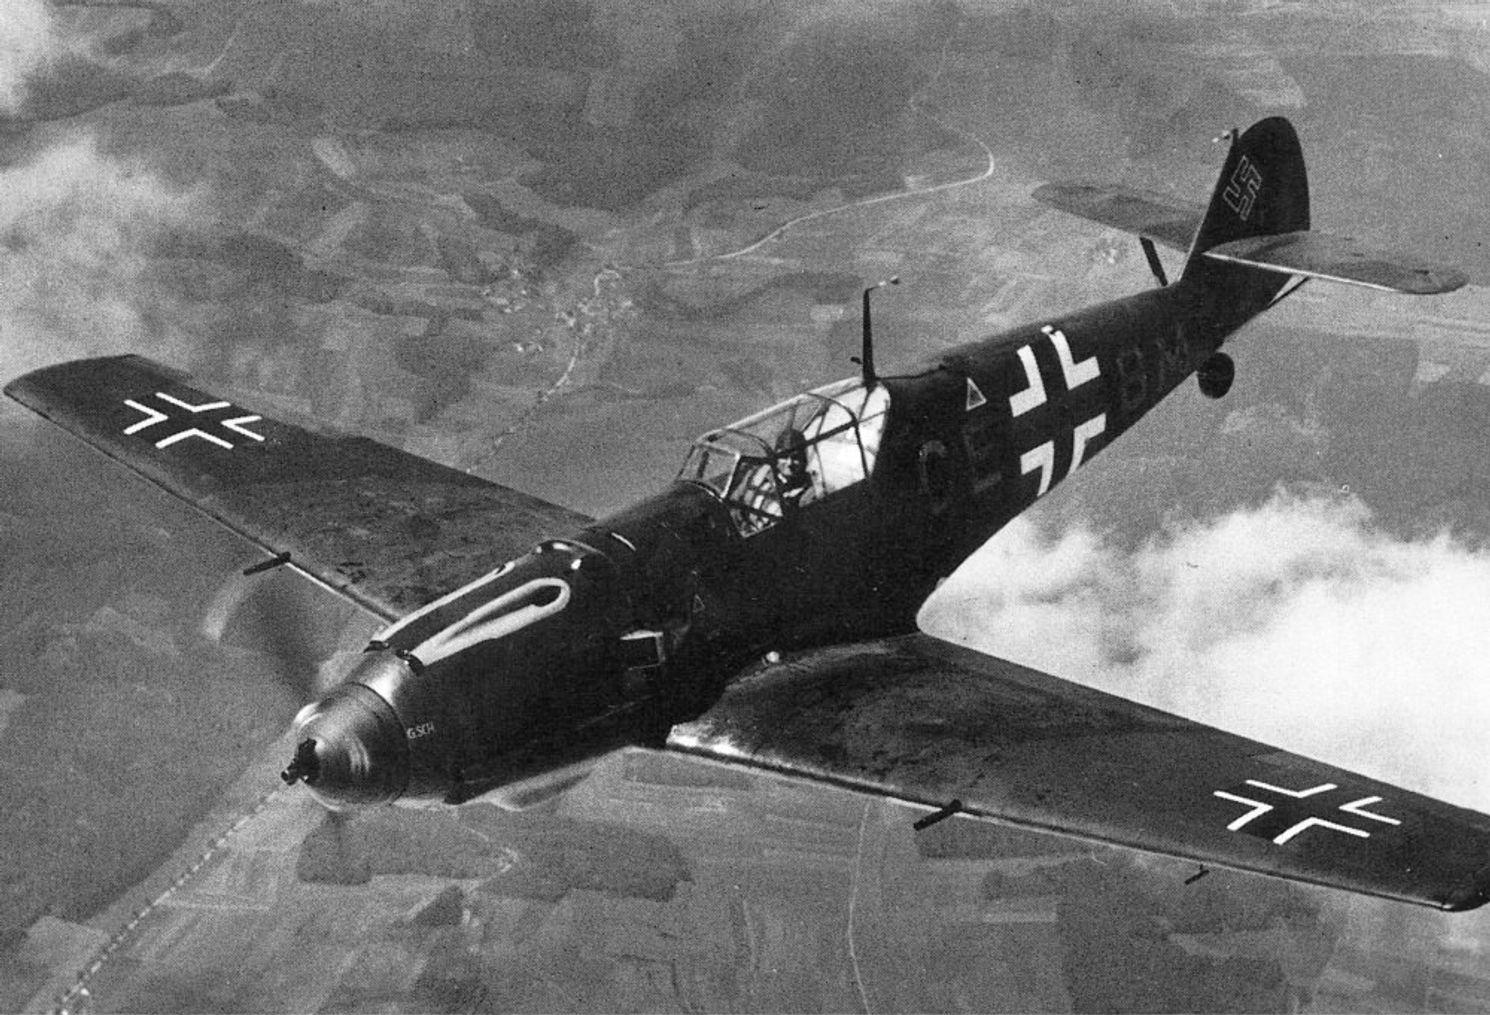 The Strange Story of How Nazi Fighter Planes Save Israel